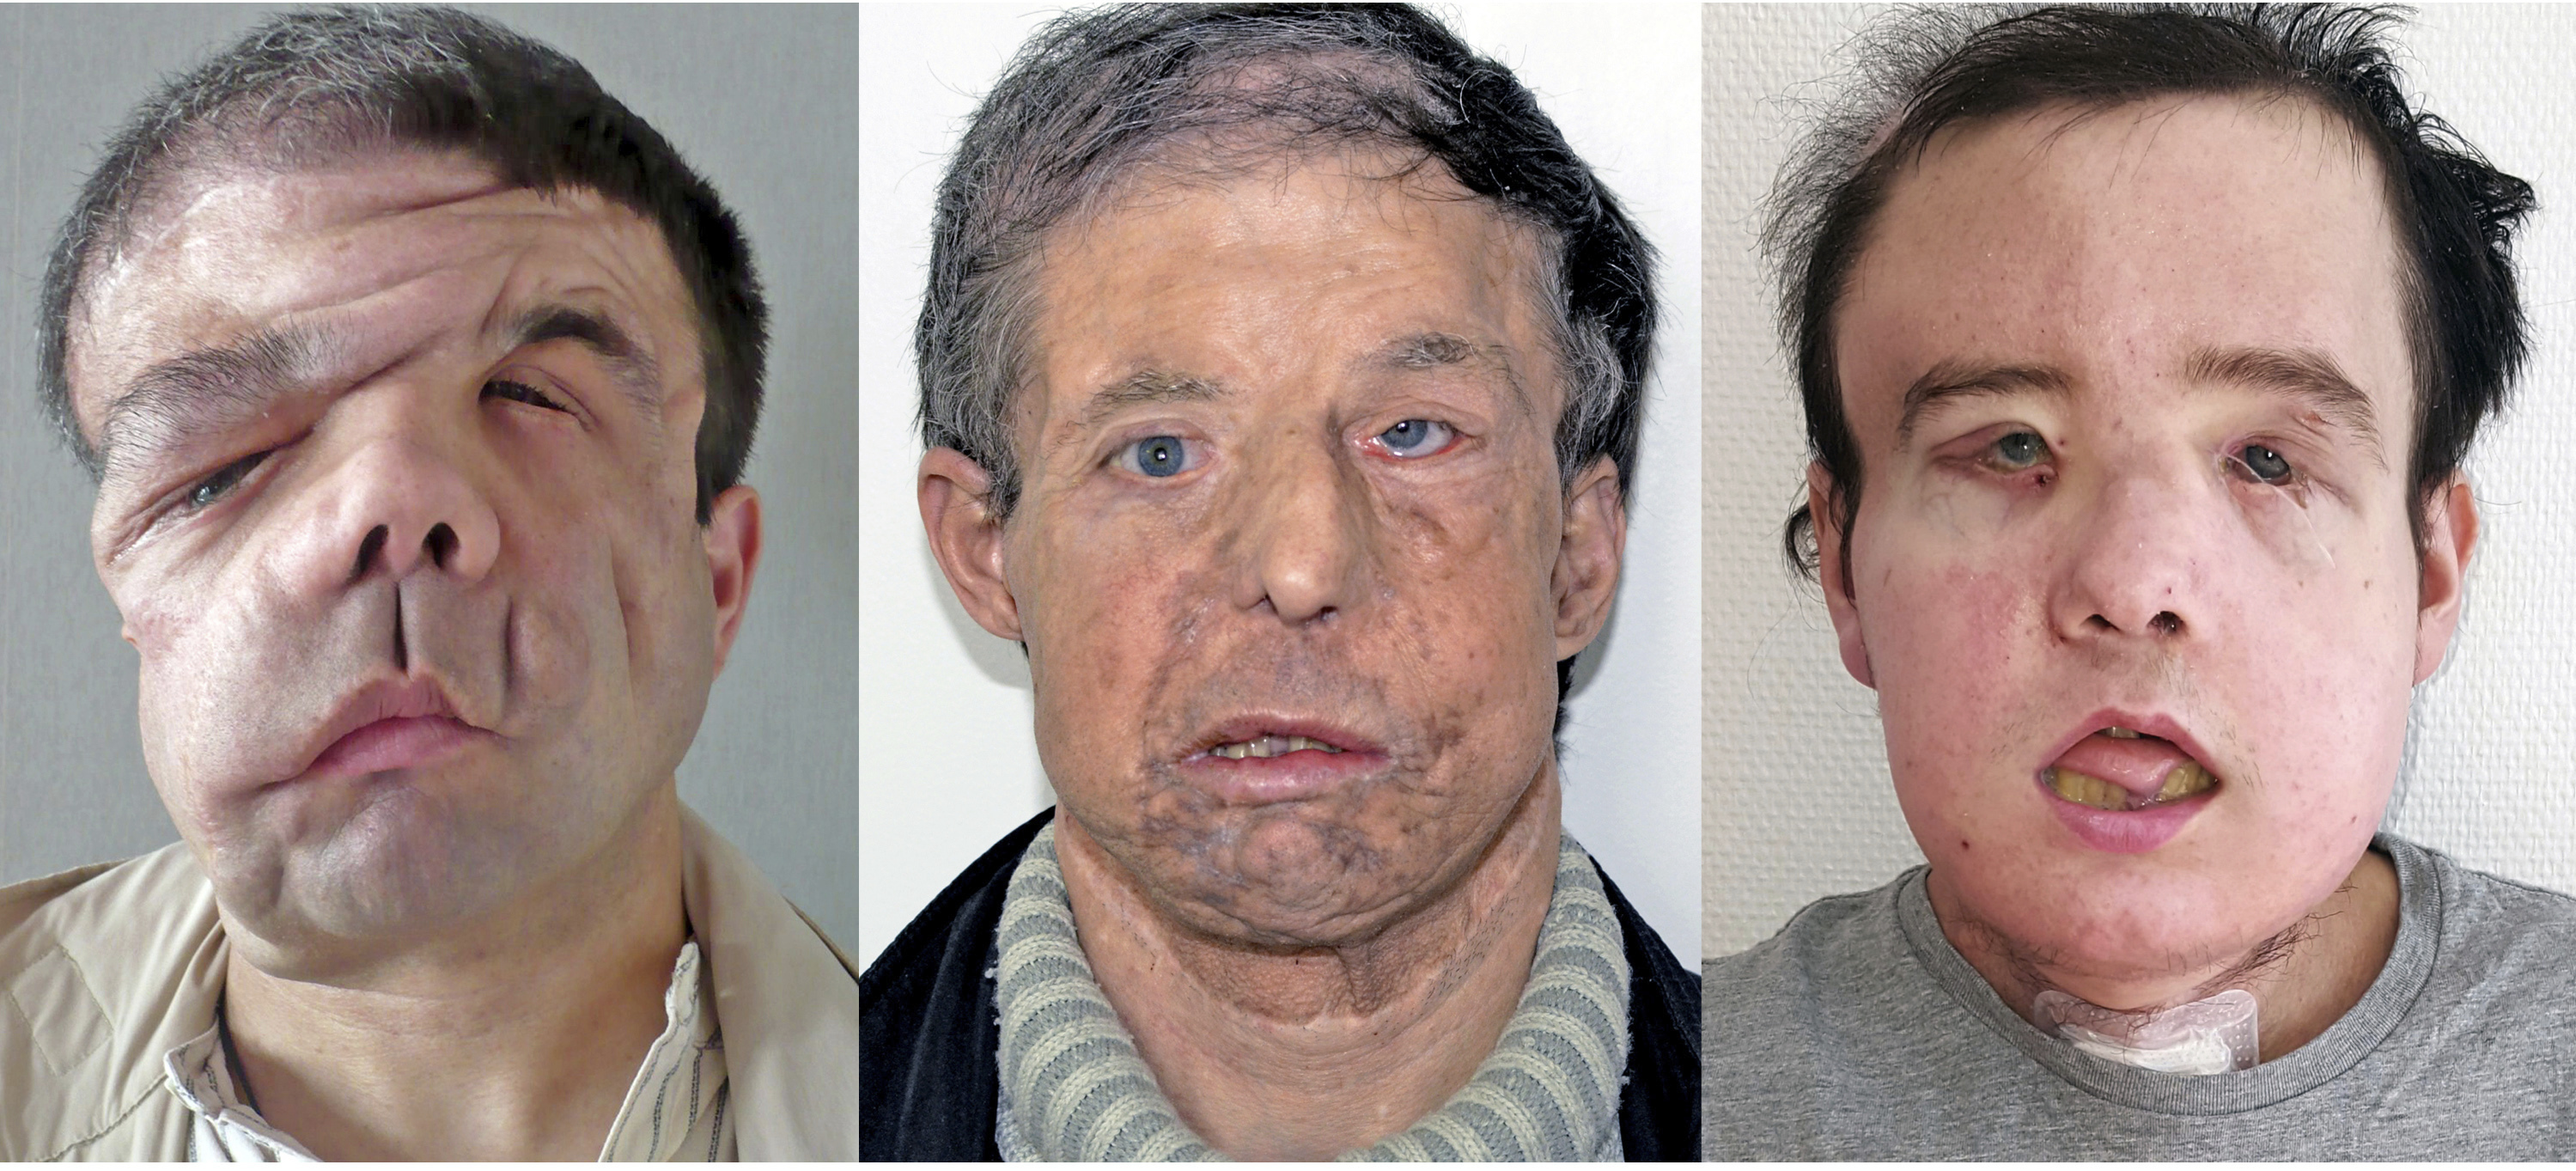 Facial tumors pictures